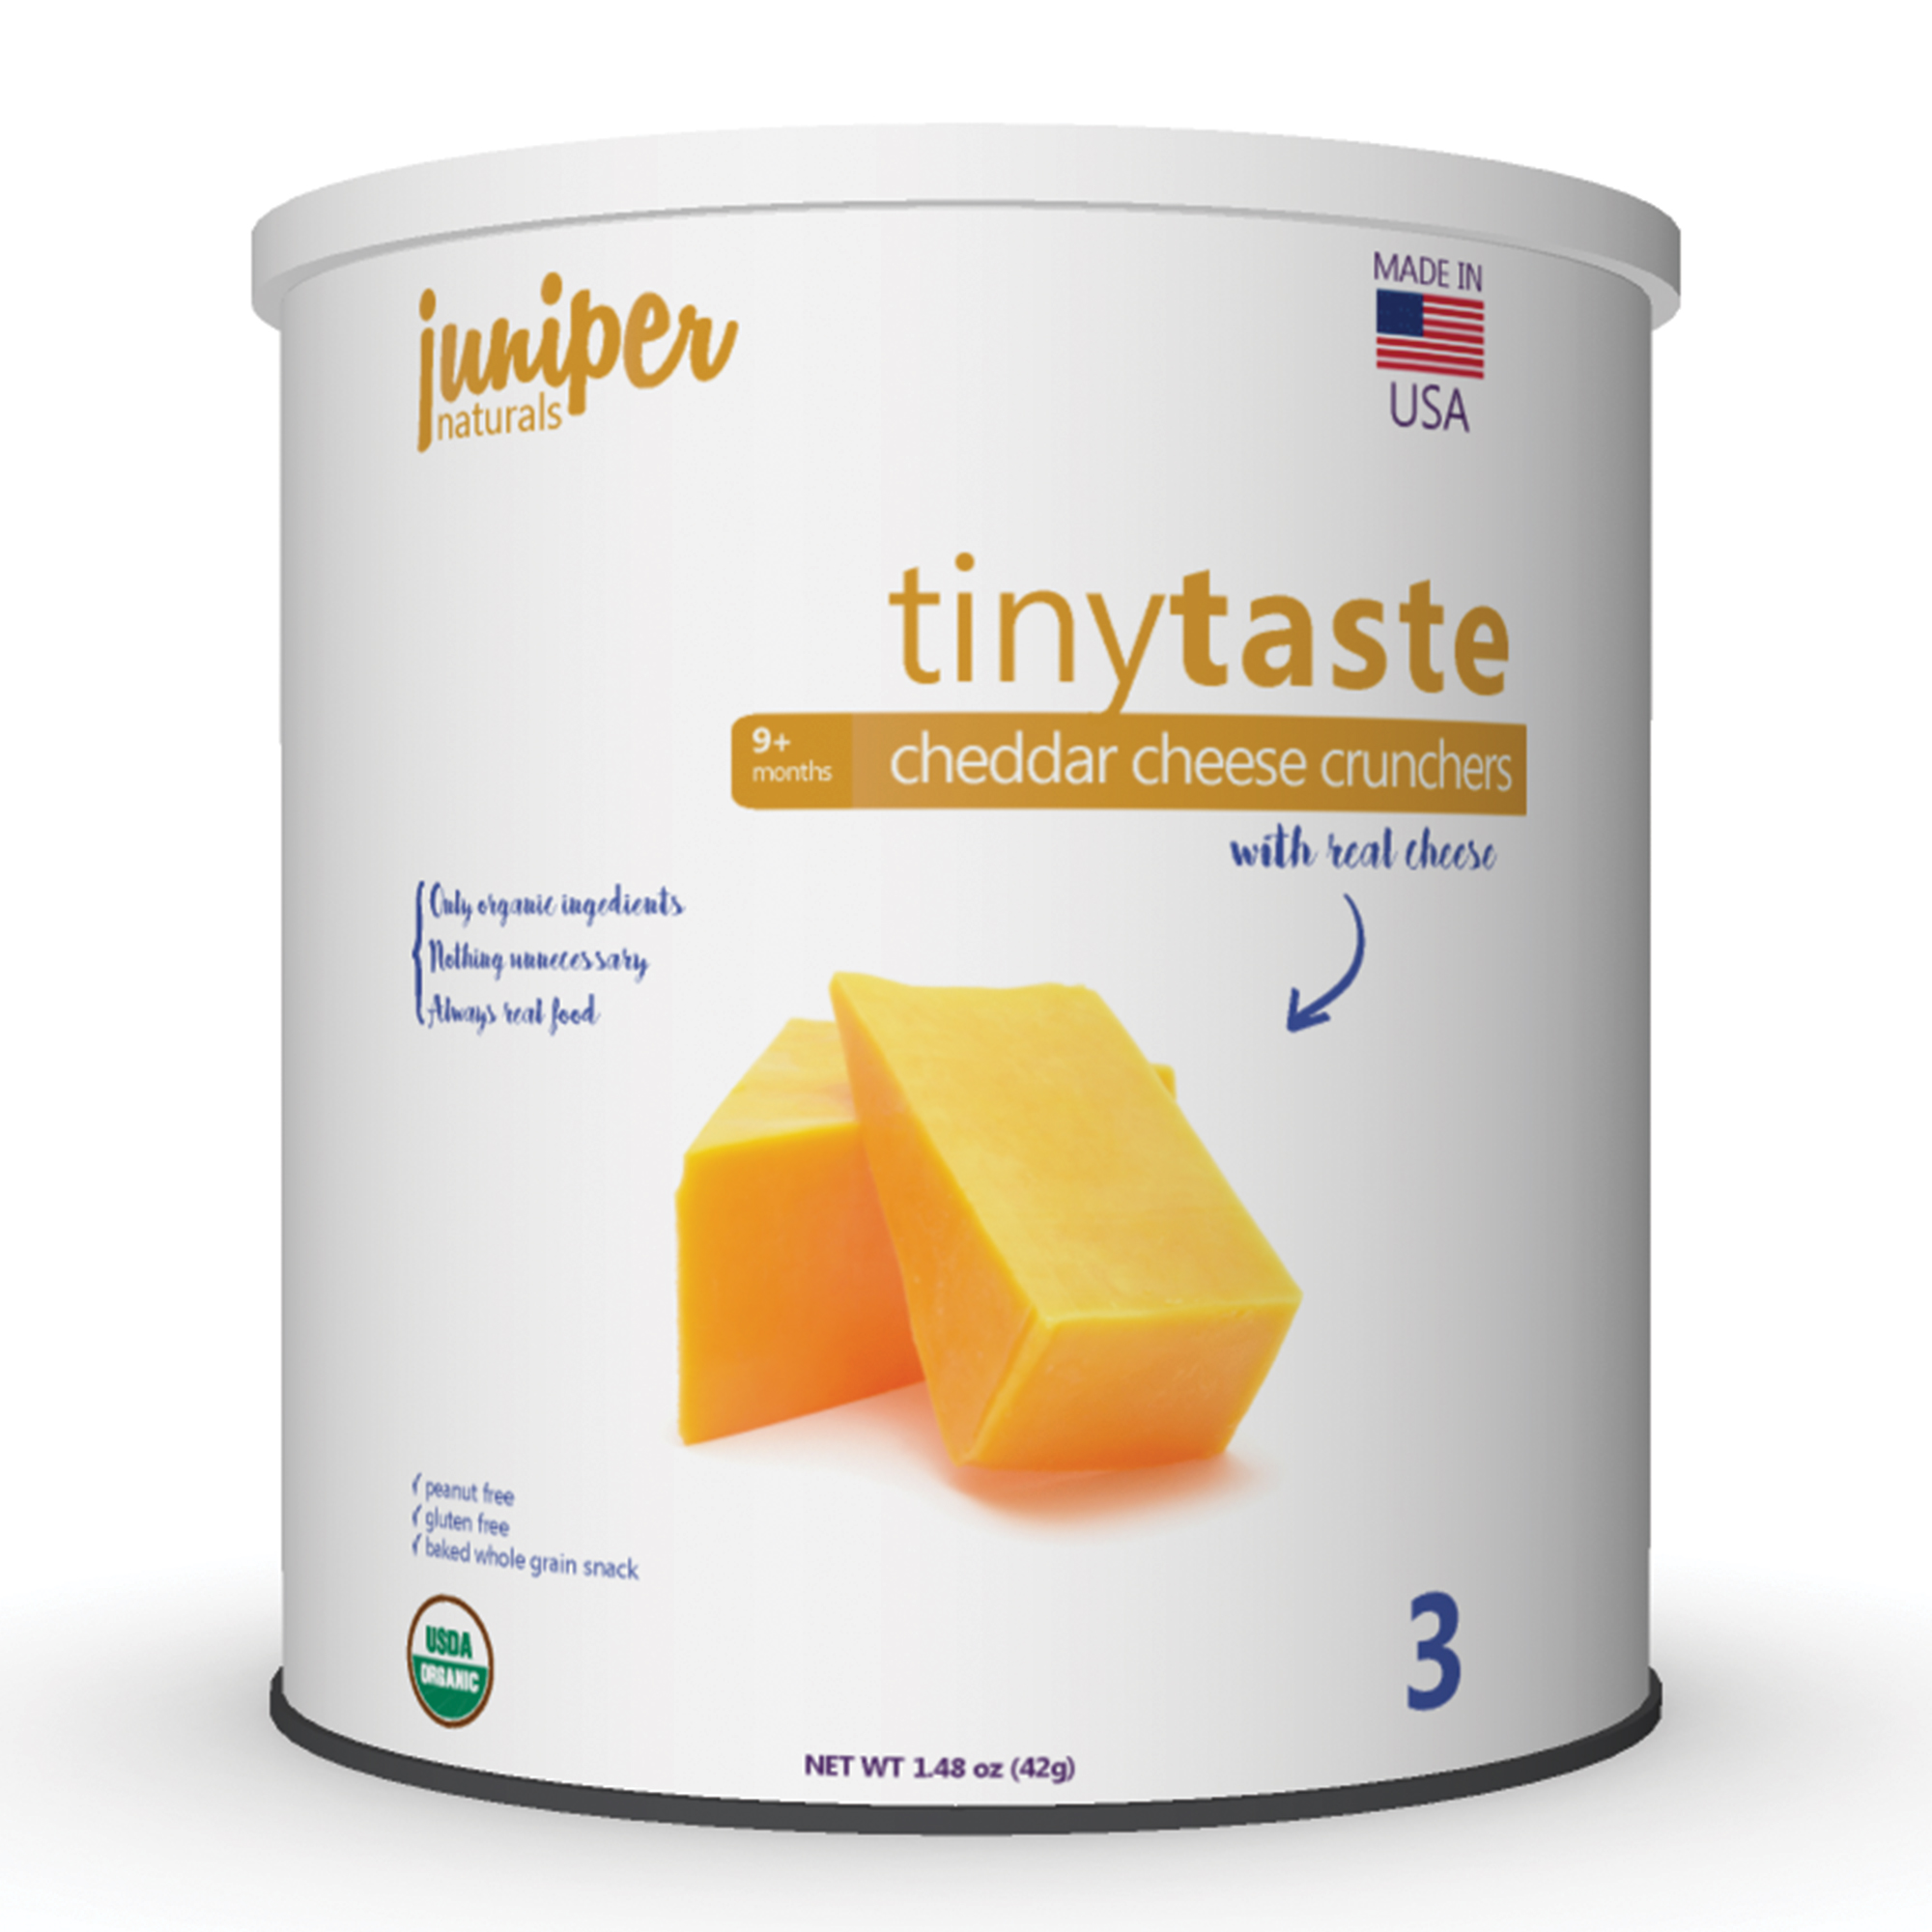 Juniper Naturals cheddar cheese crunchers